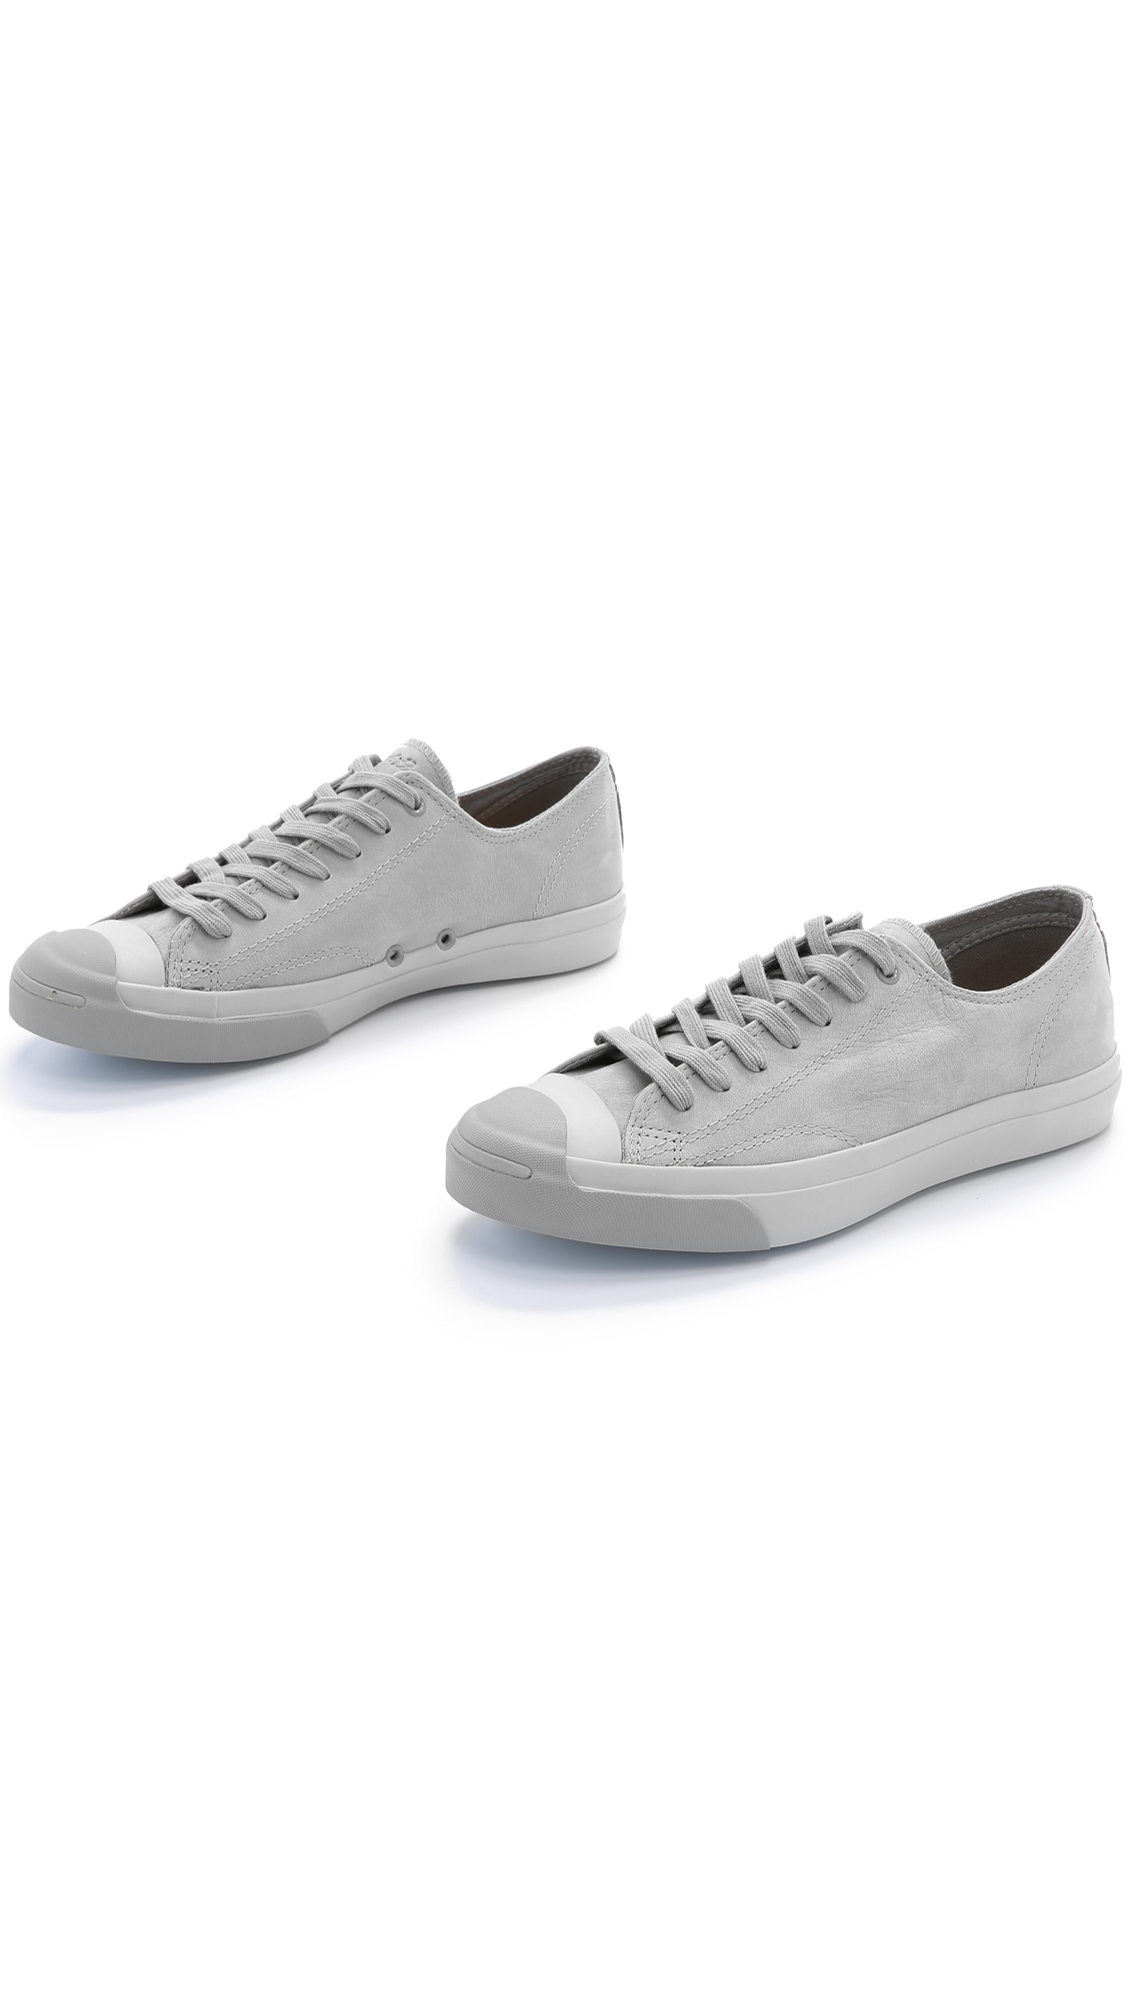 e7d79c7648f0a8 Converse Jack Purcell Jack Nubuck Sneakers in Gray for Men - Lyst